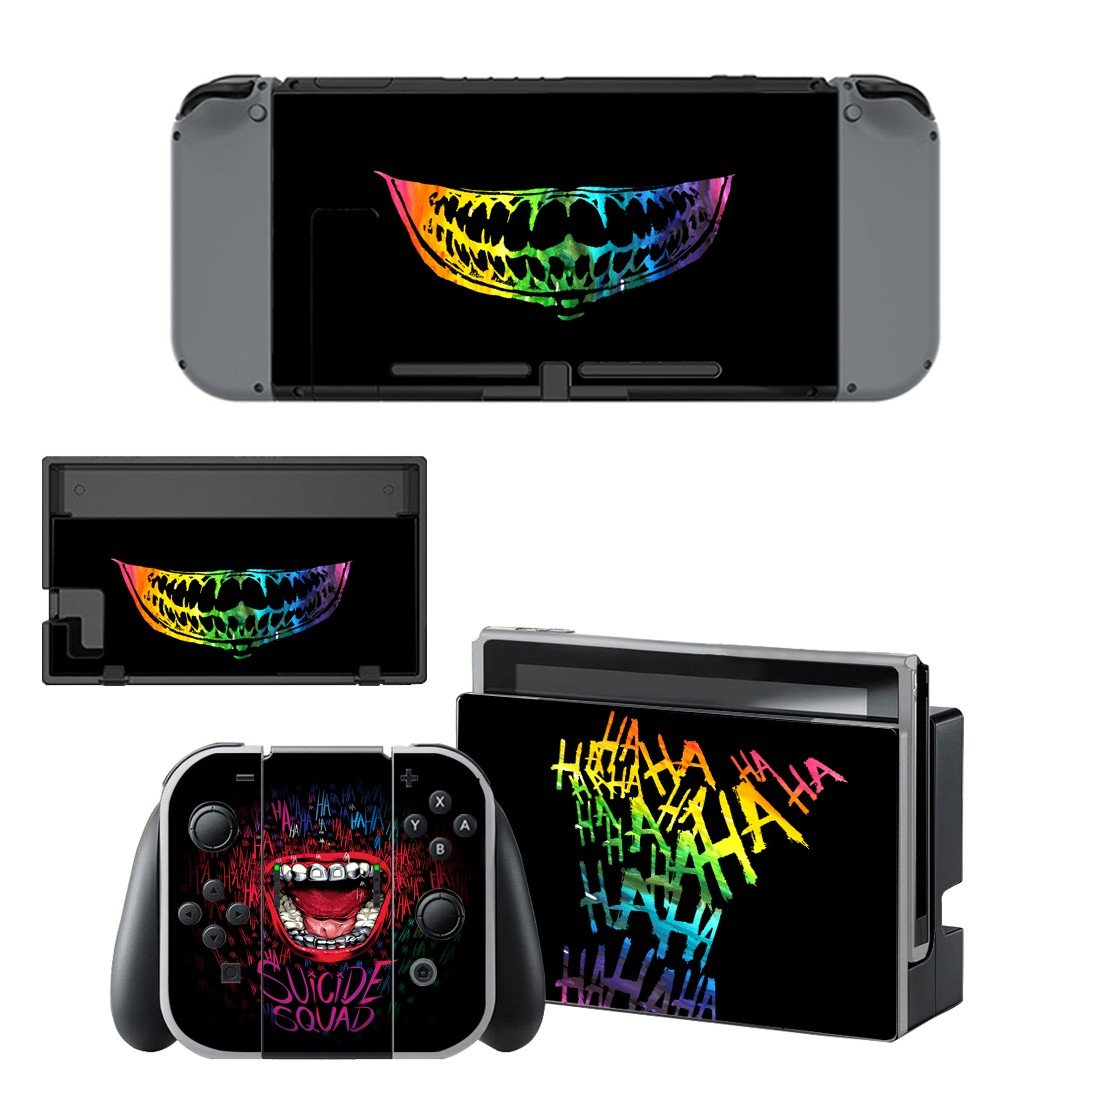 Suicide squad decal for Nintendo switch console sticker skin